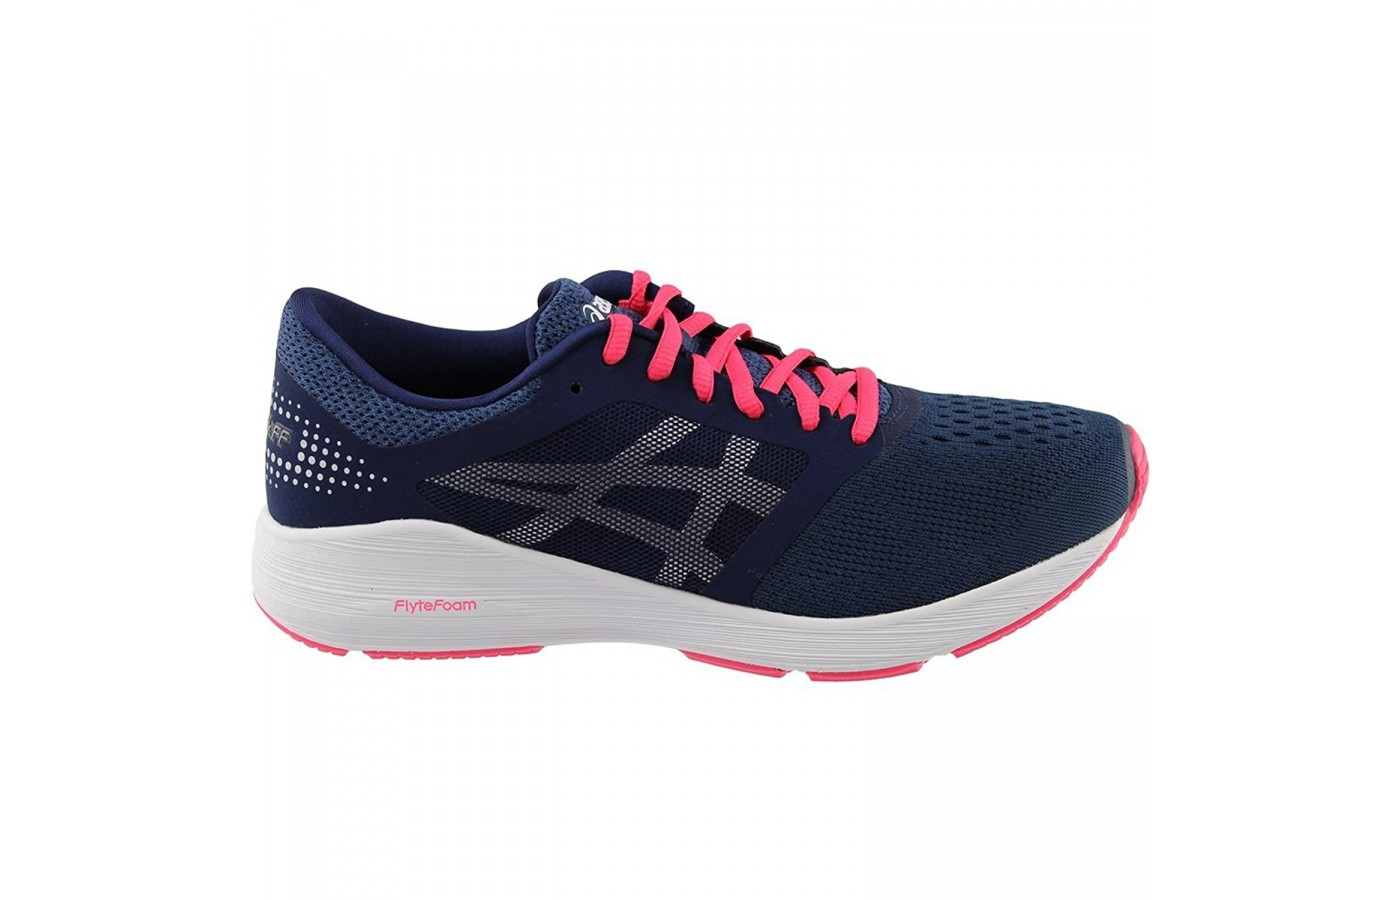 ASICS RoadHawk FF Right